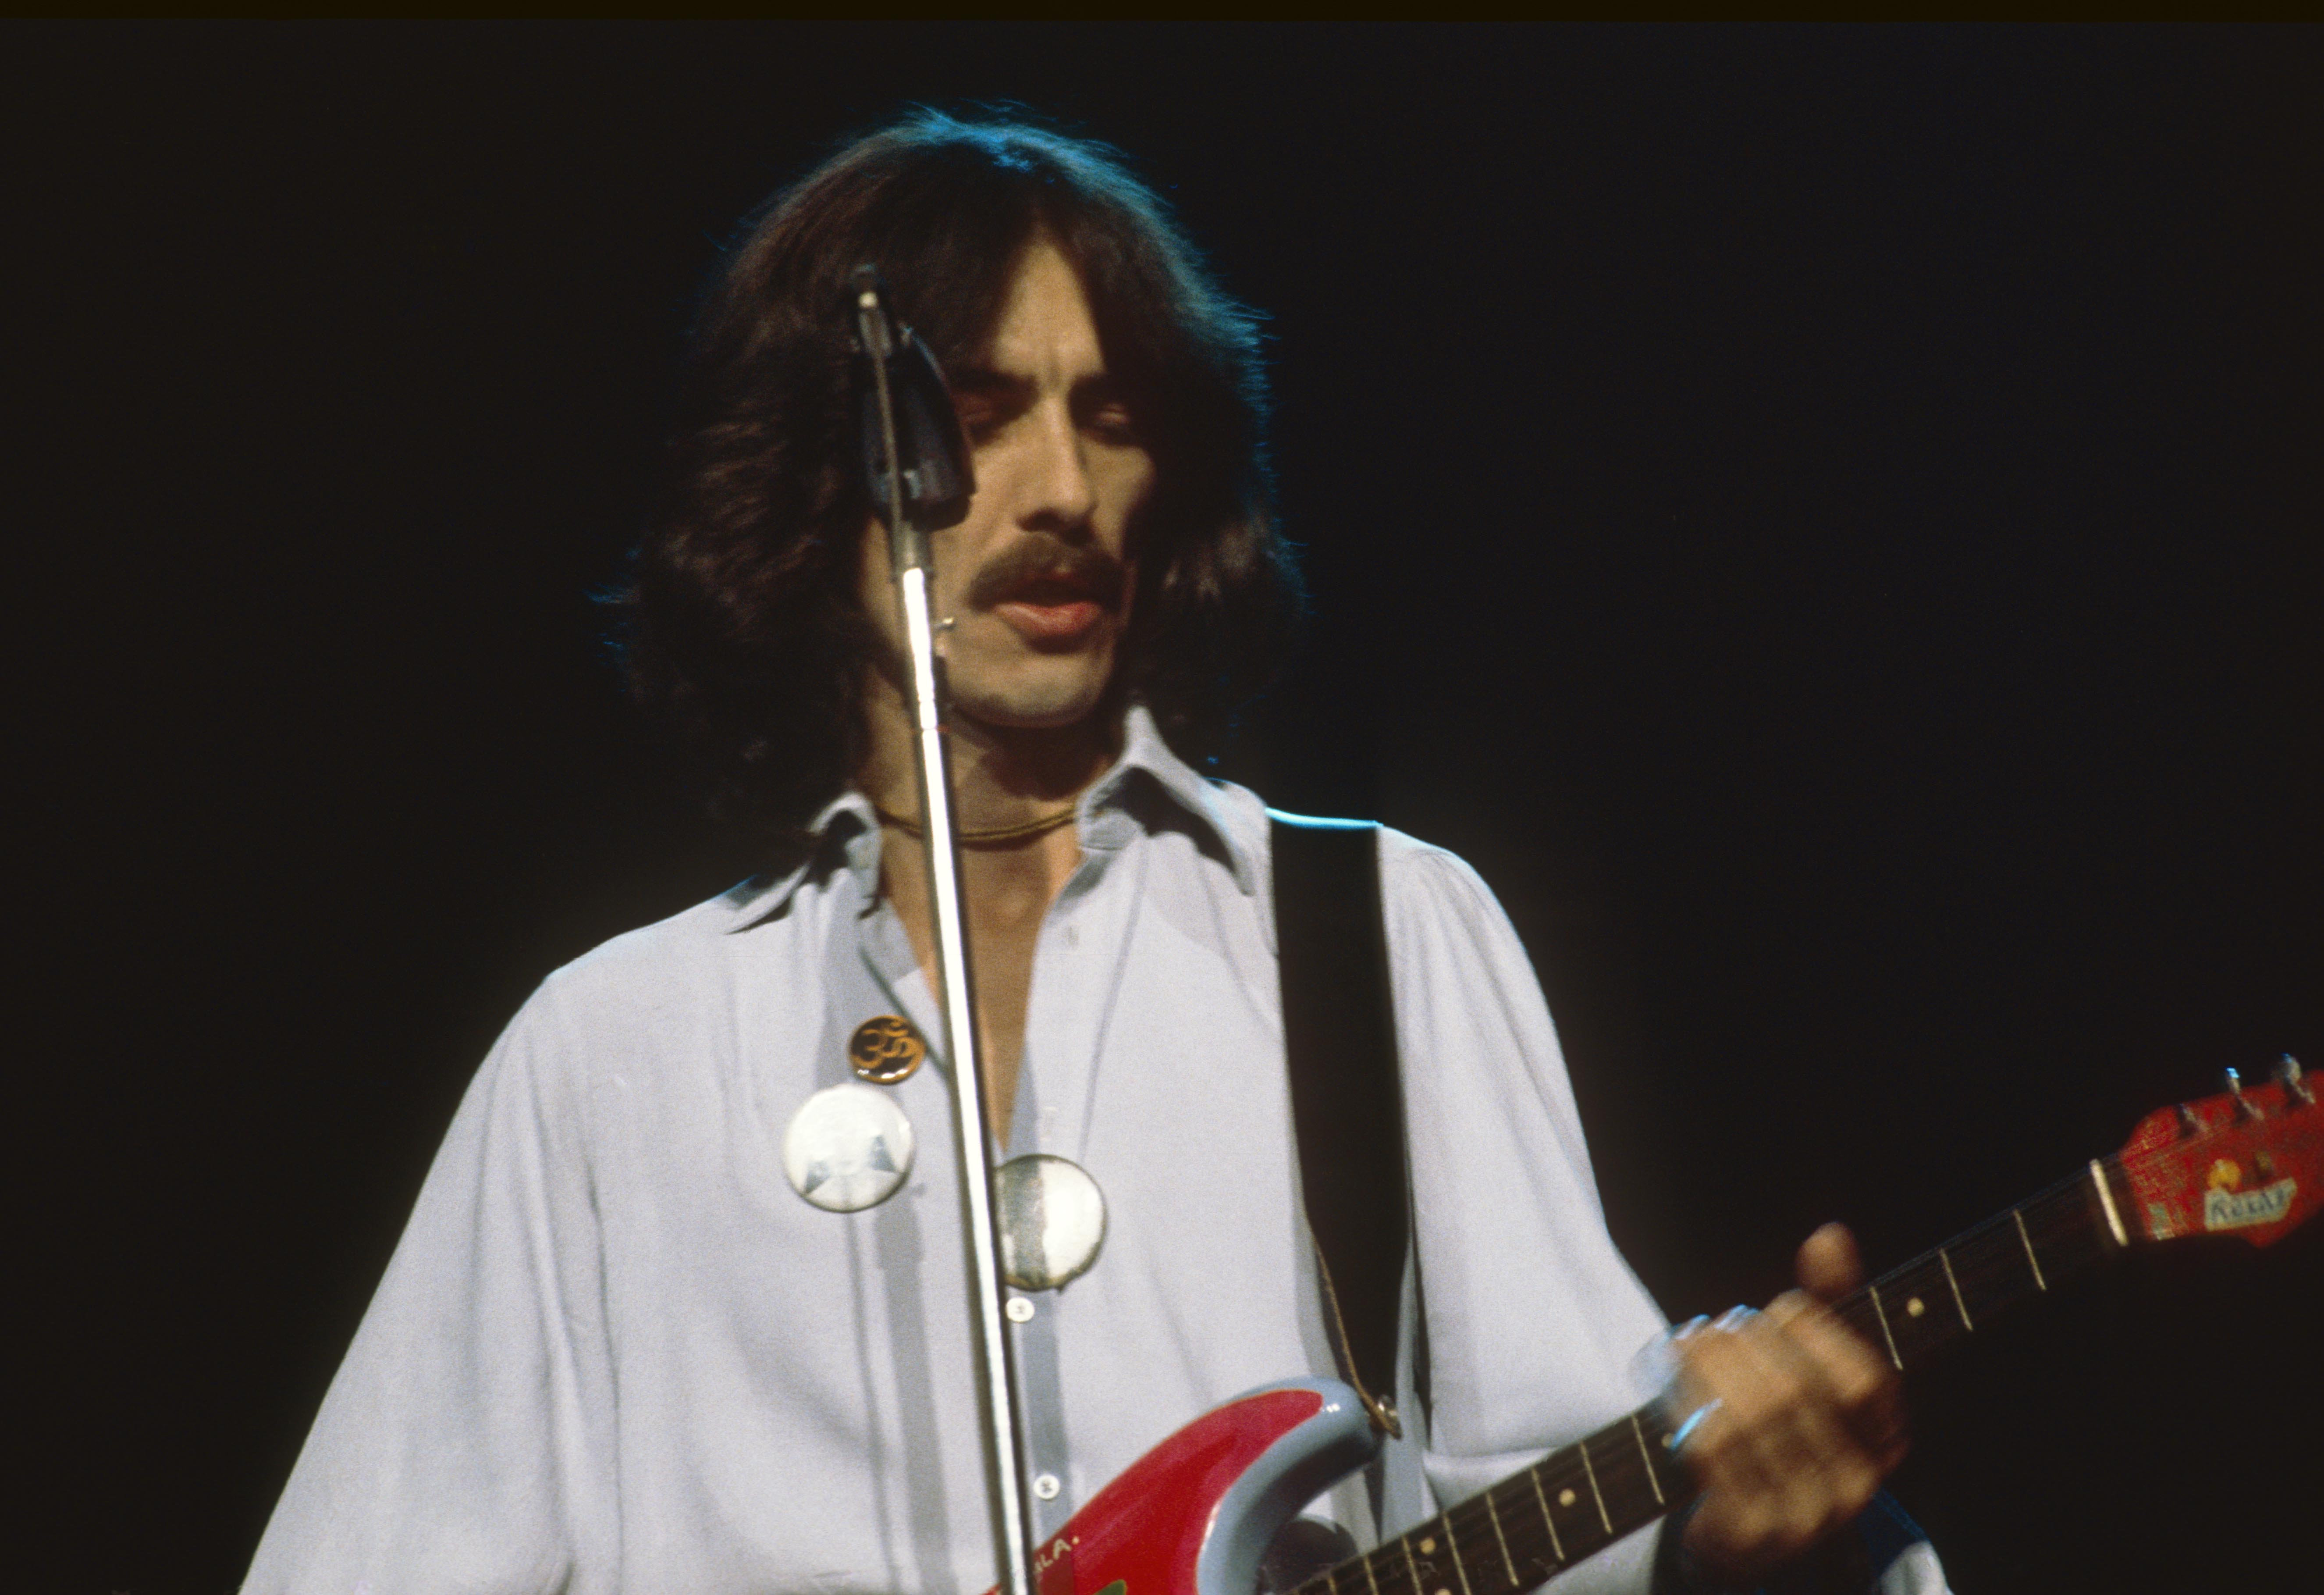 """George Harrison's Solo Album """"All Things Must Pass"""" Released In A 50th Anniversary Edition"""